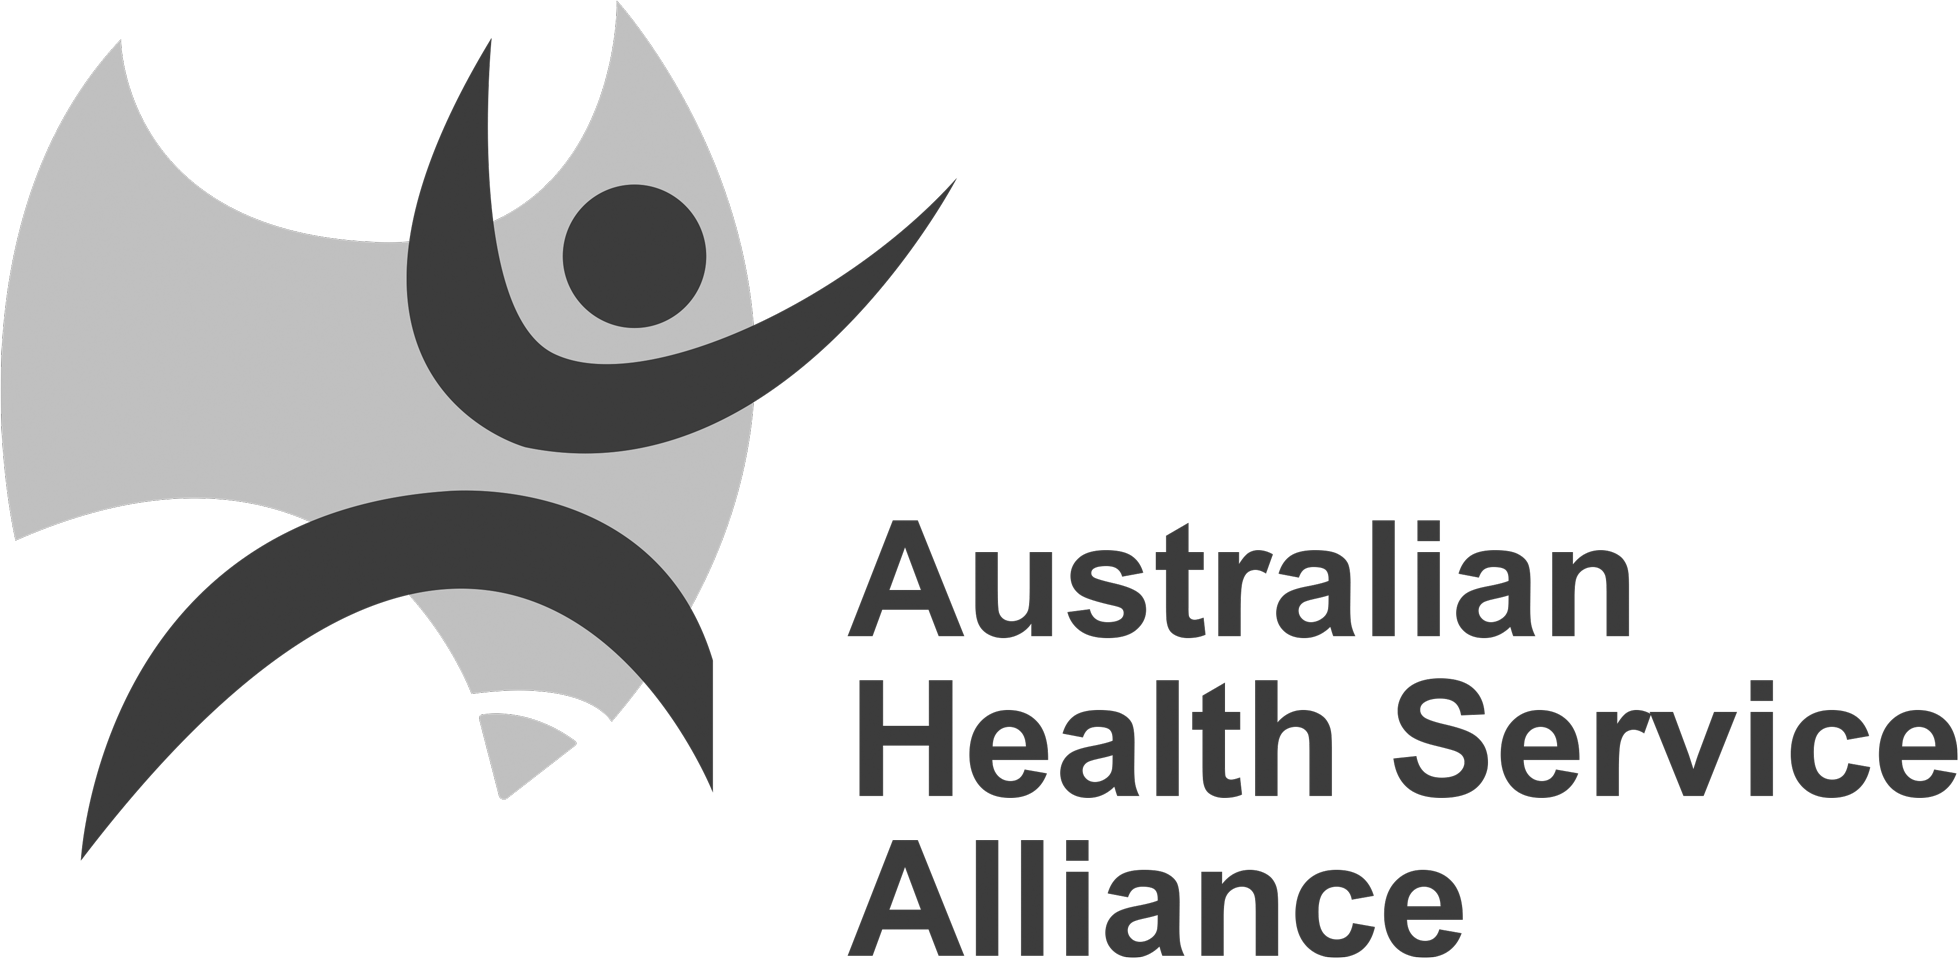 Australian Health Service Alliance